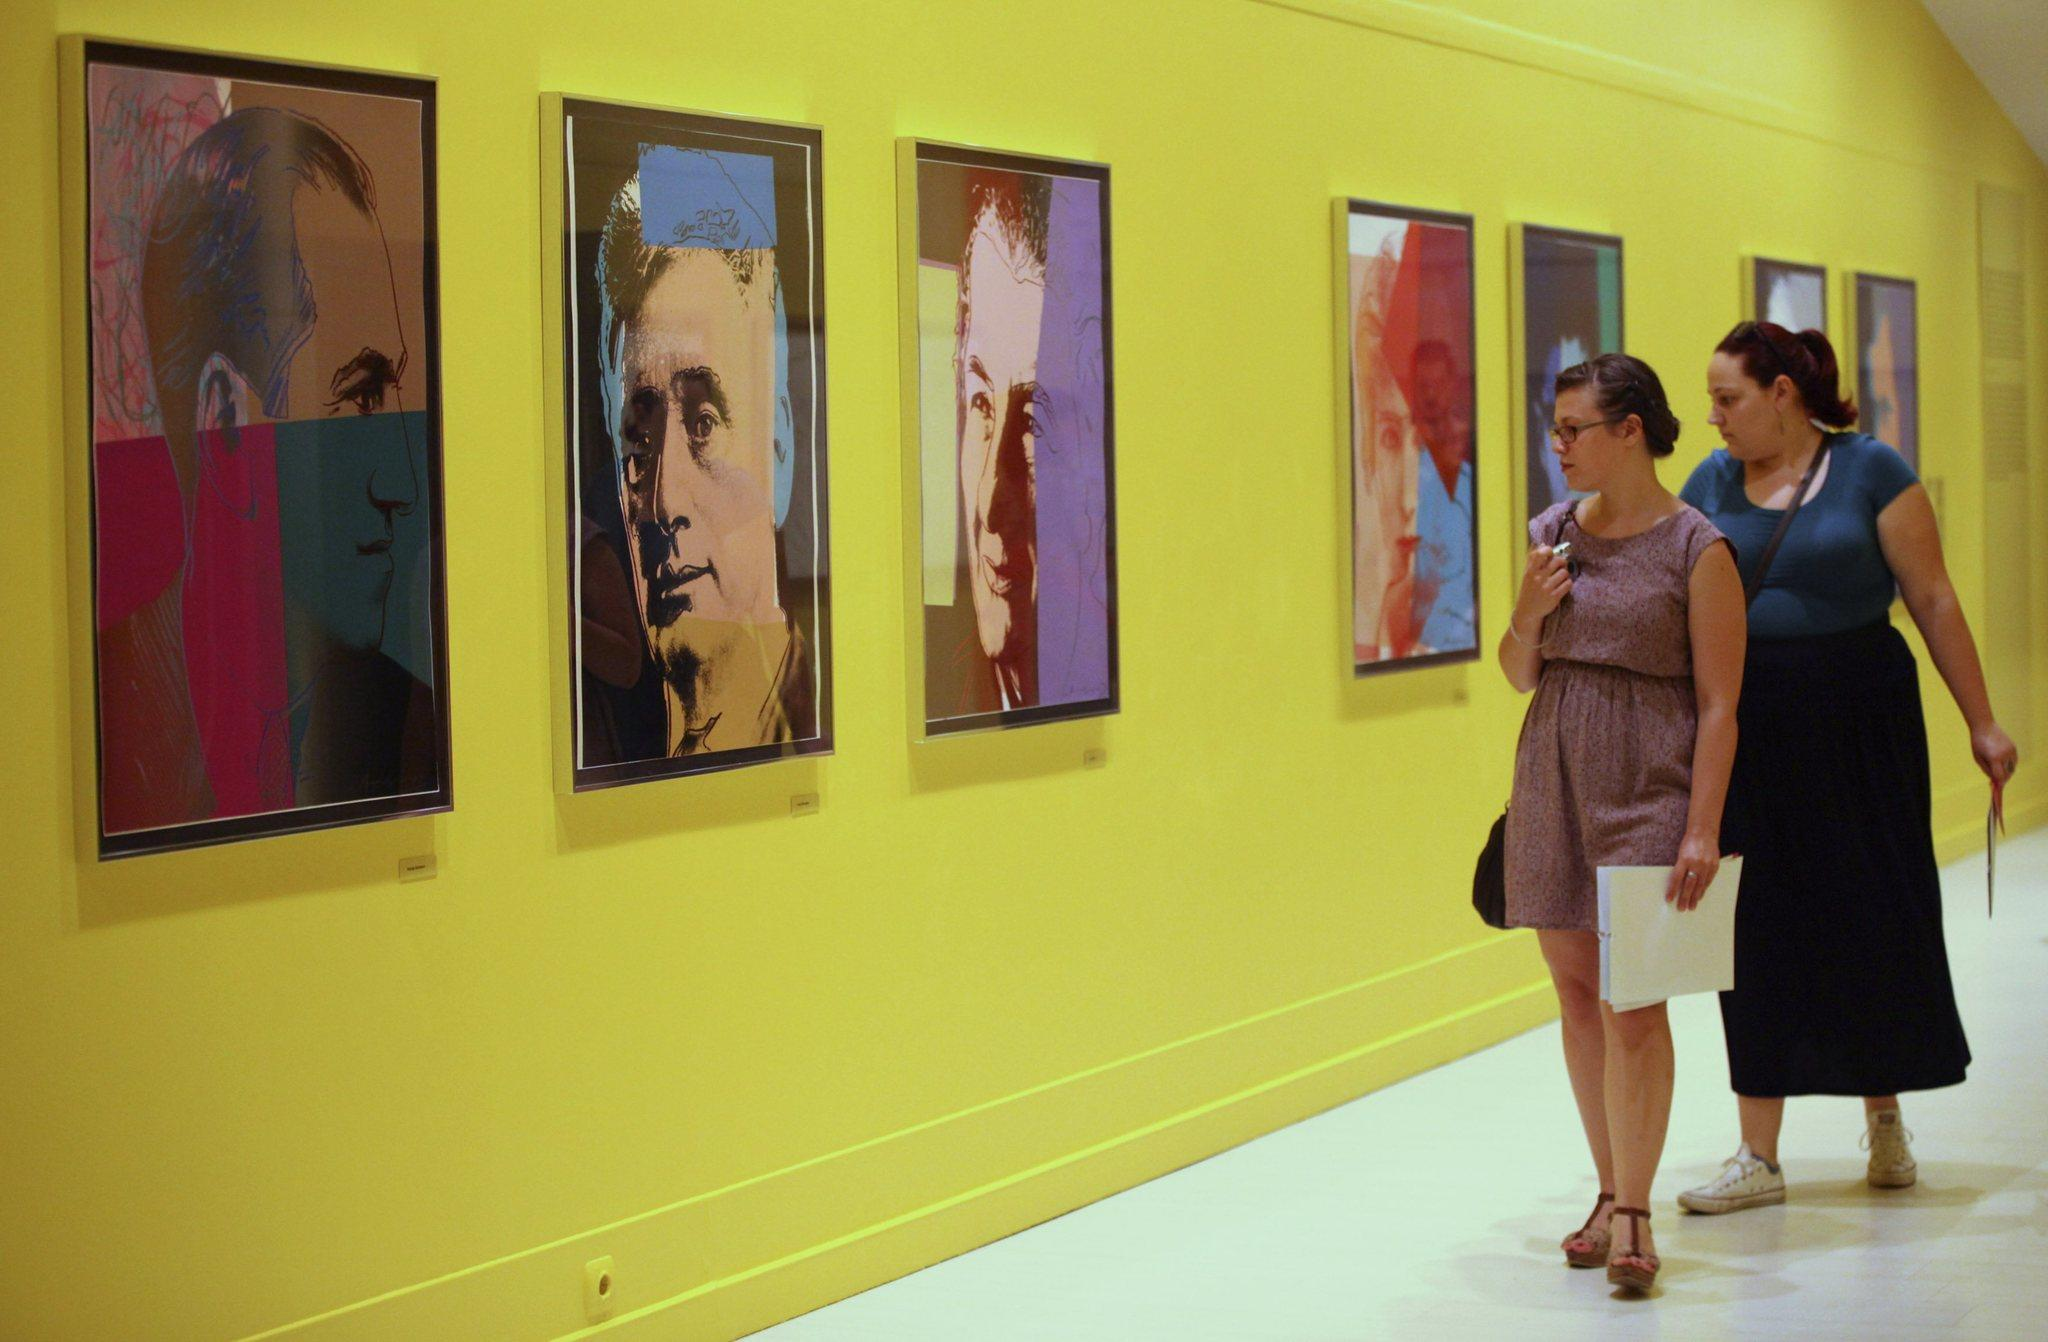 Warhol\'s soup cans cast in personal light at Turkish show ...